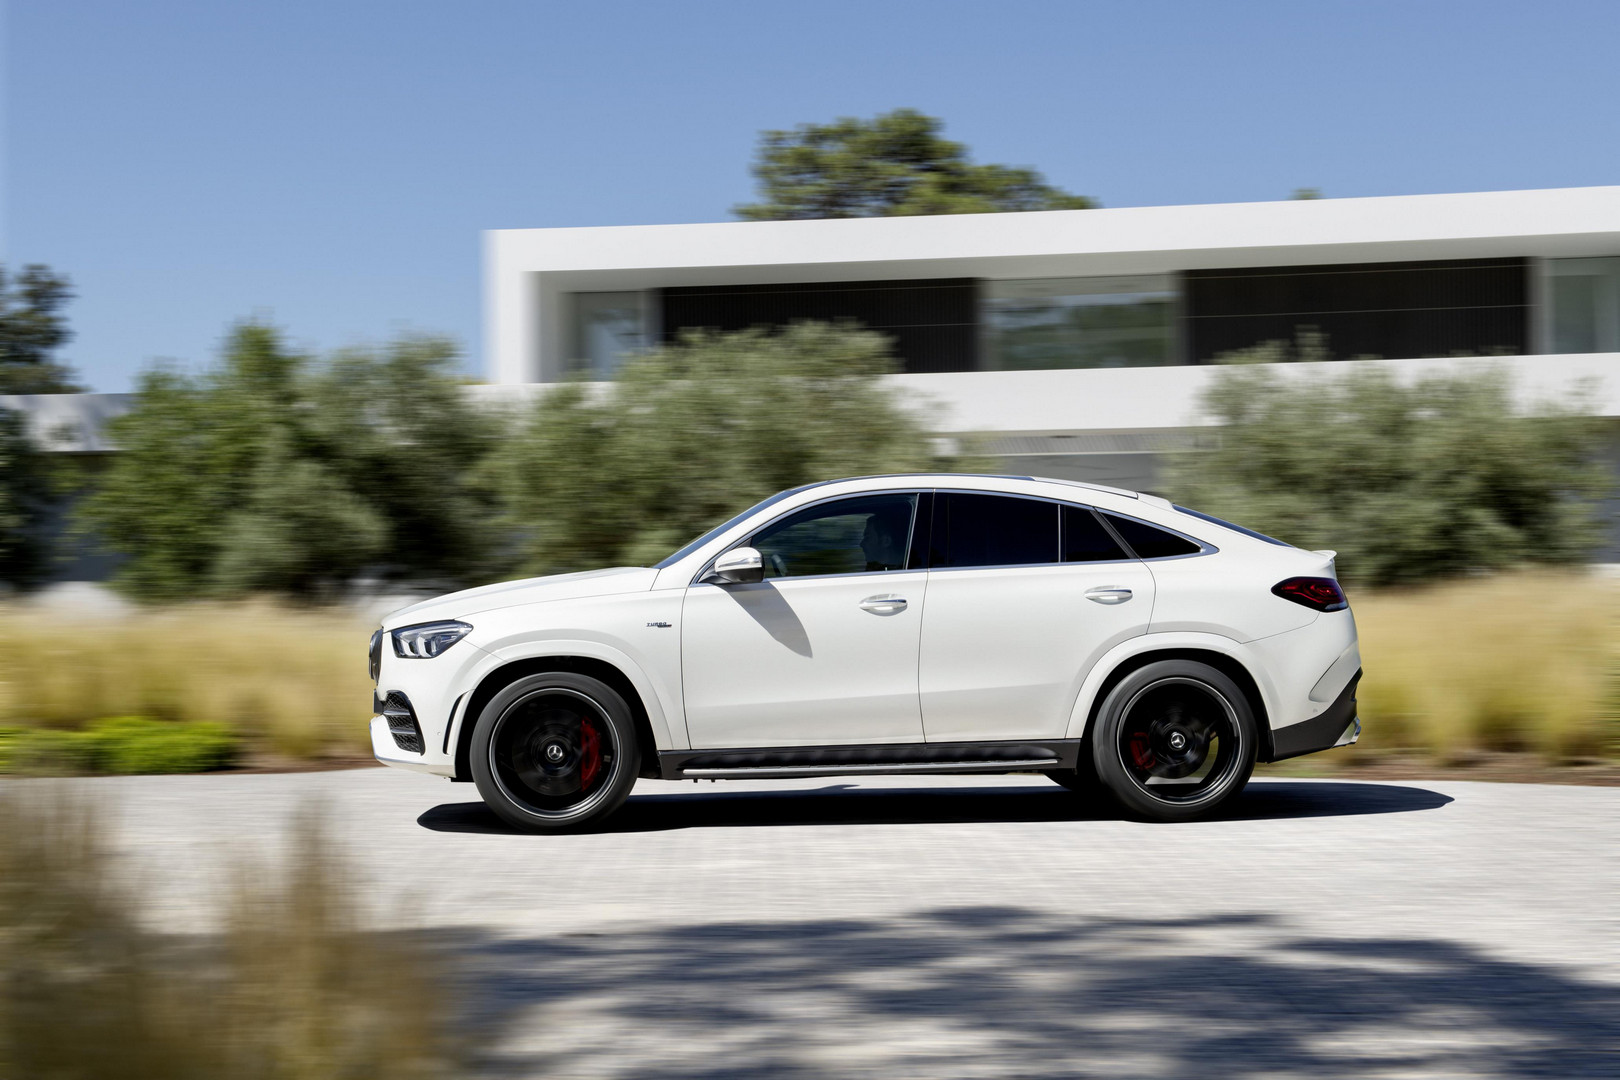 Mercedes-AMG GLE 53 Coupe Side View